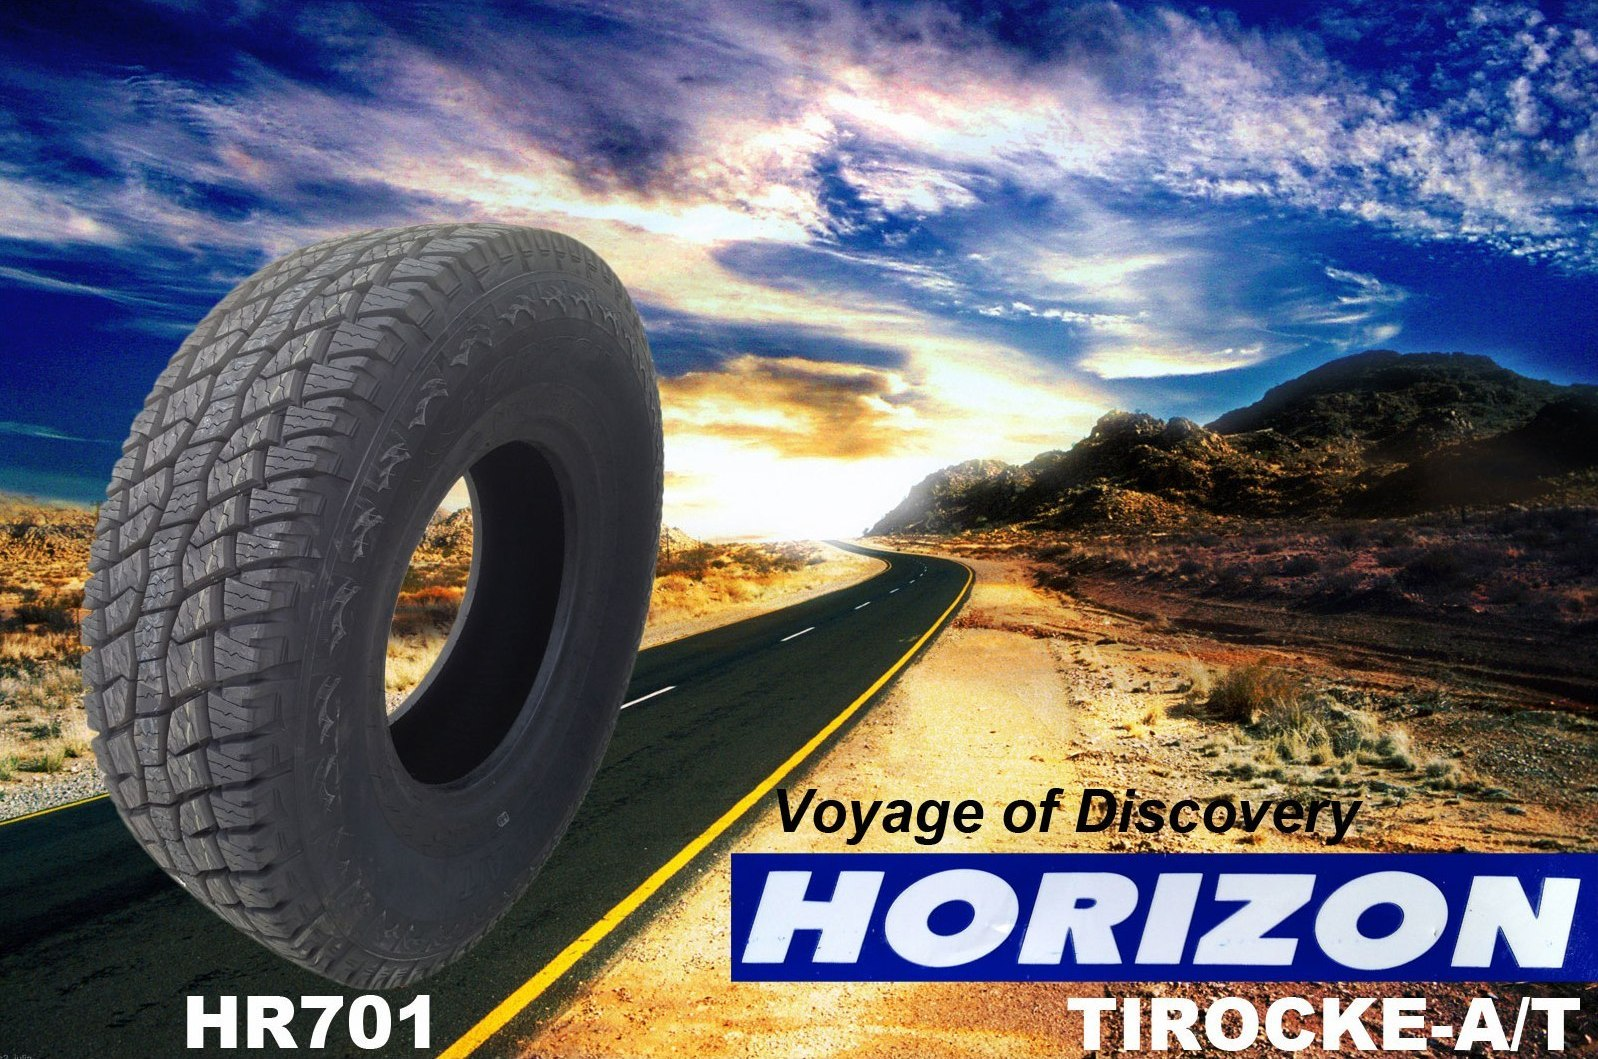 HORIZON HR701 Series - Voyage of Discovery